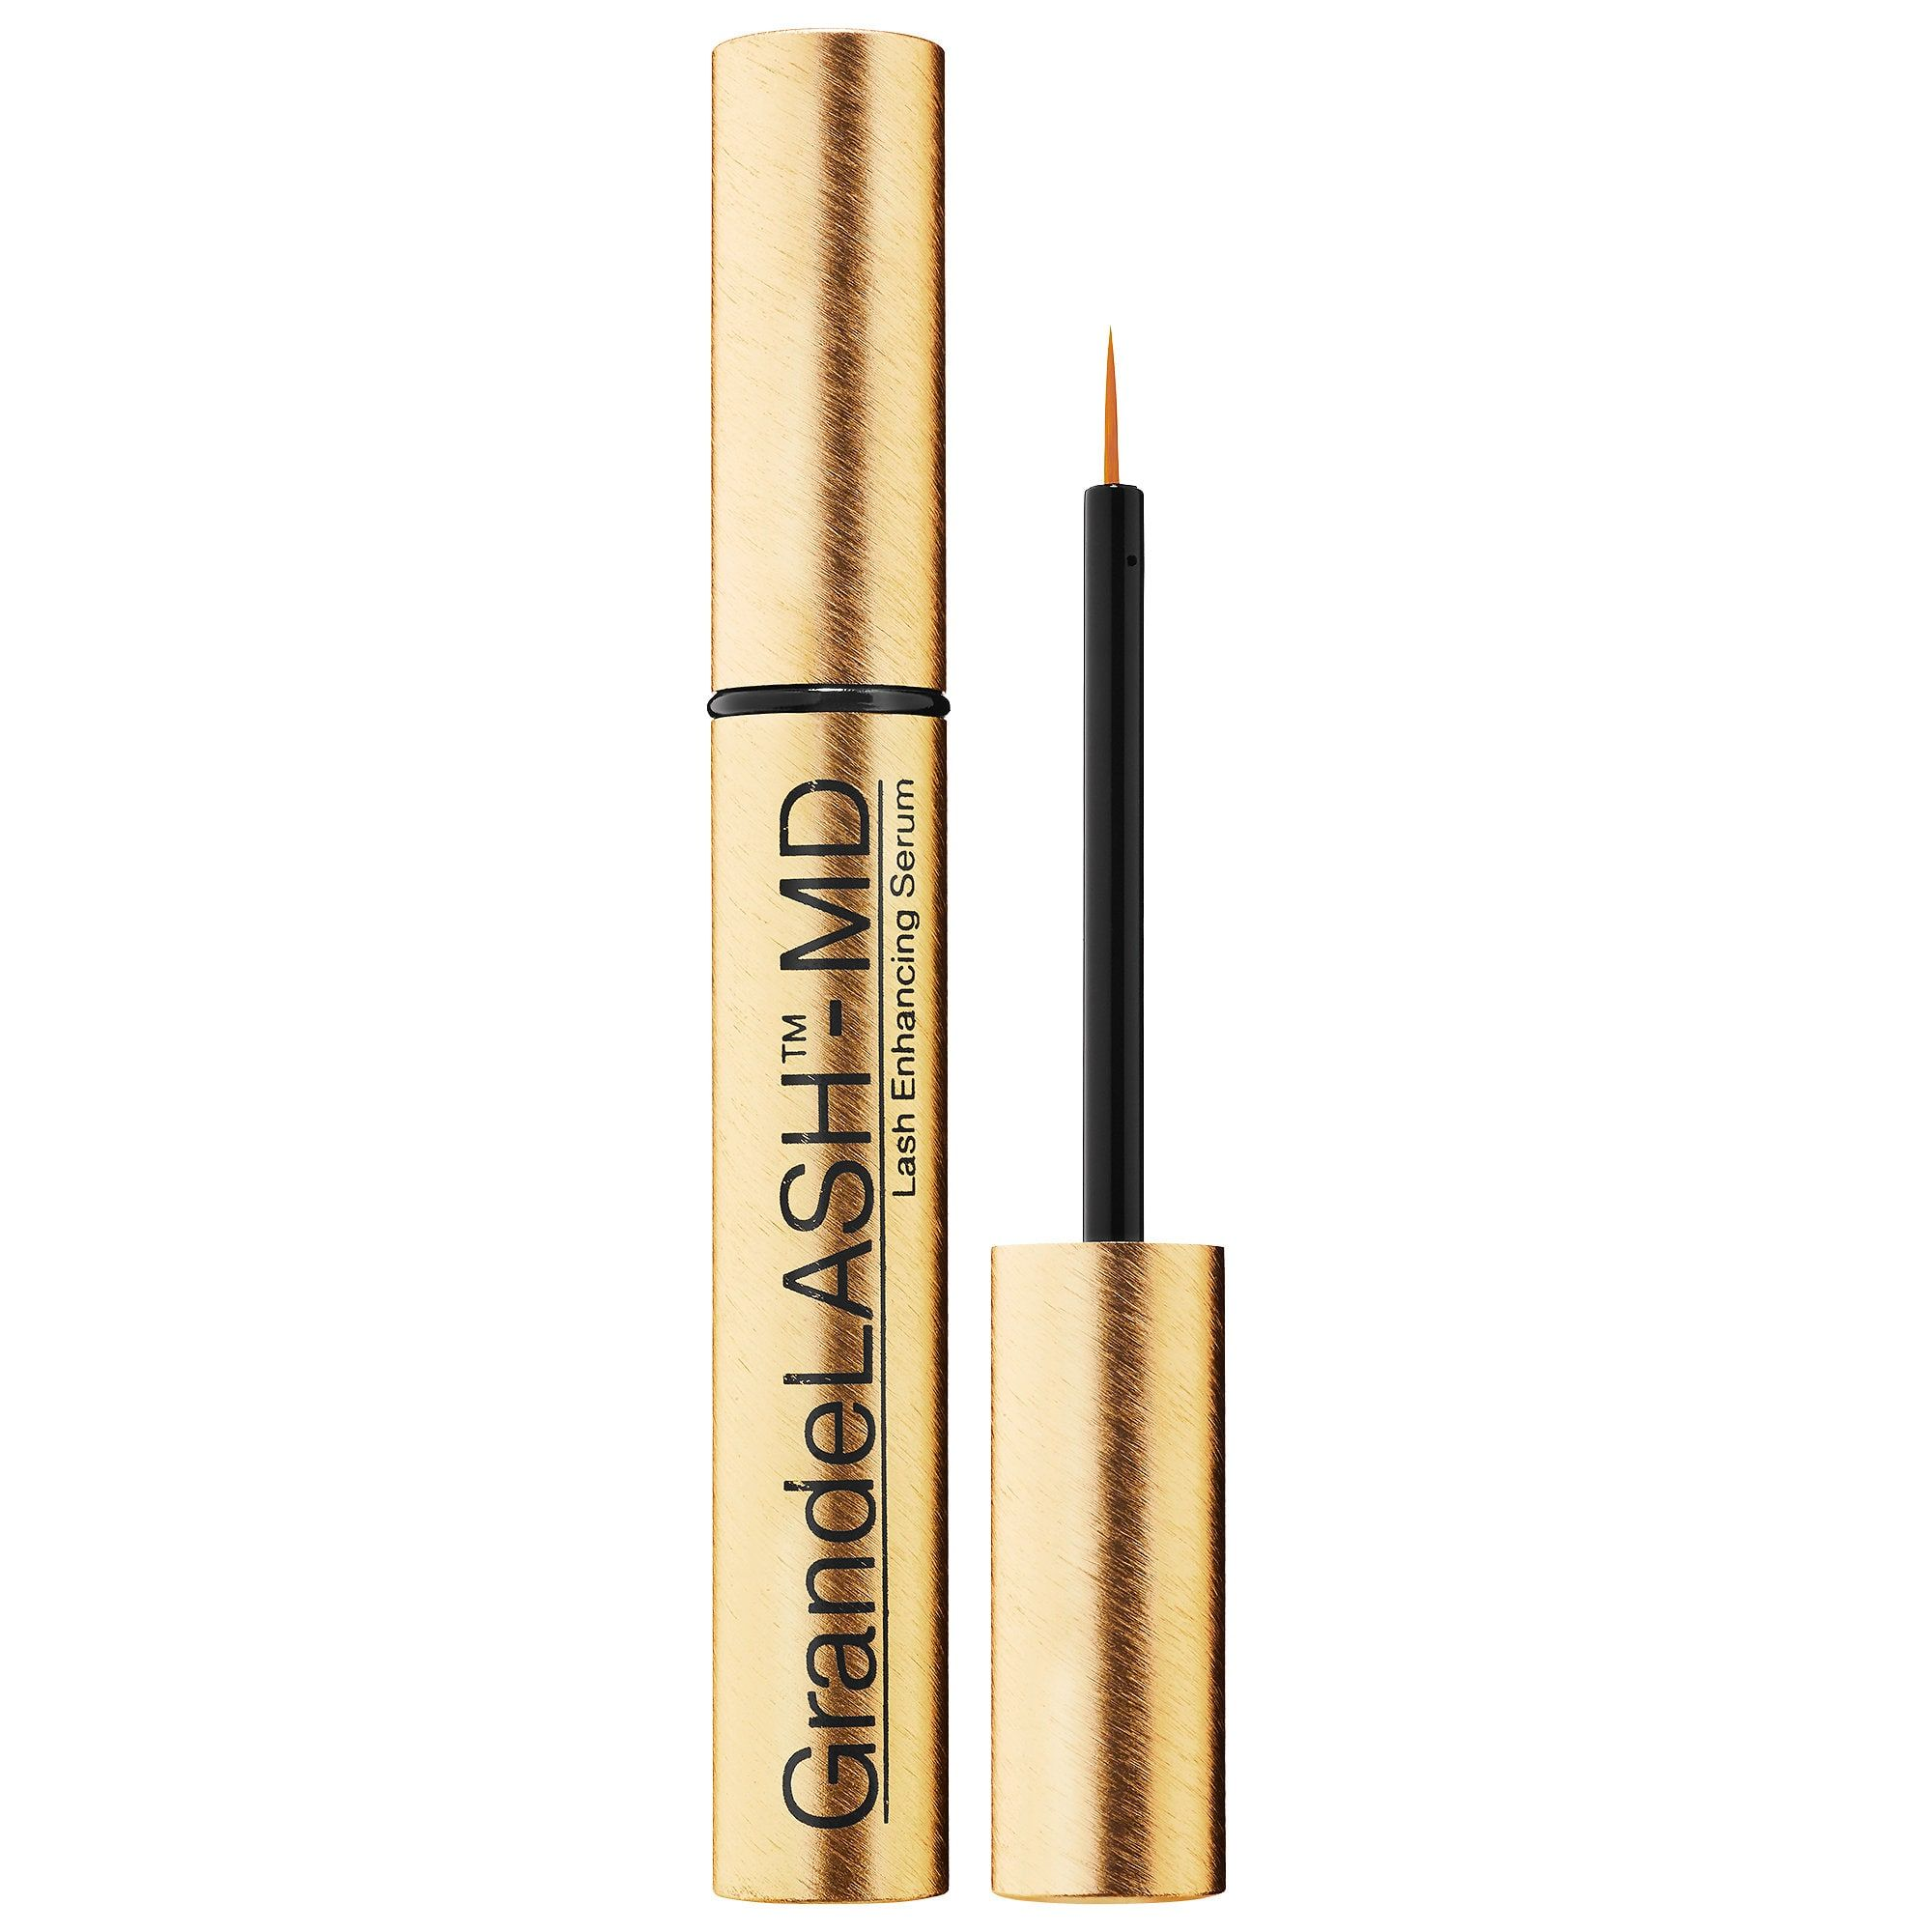 8 Best Eyelash Serums — Eyelash Growth Serums That Work